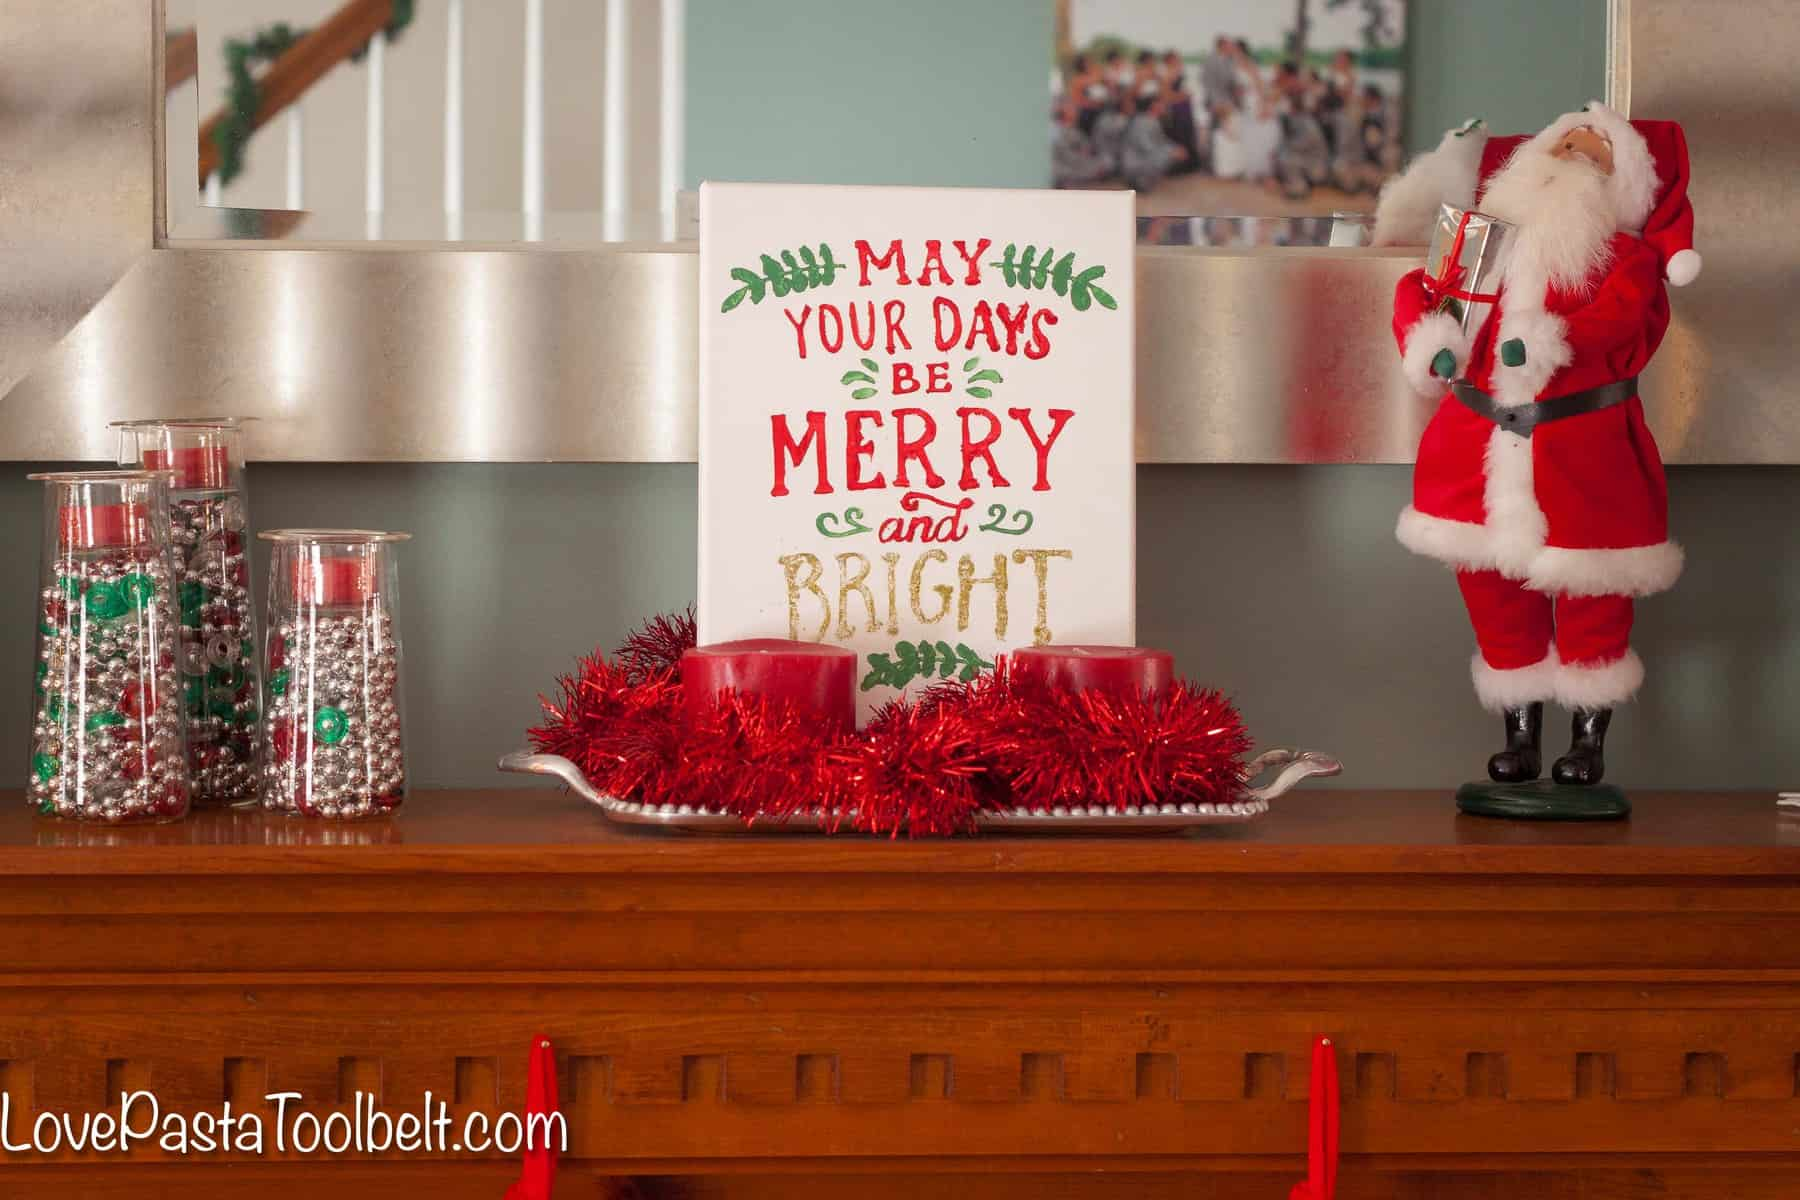 Add Some Cheer To Your Home With This DIY Merry And Bright Canvas!  Love